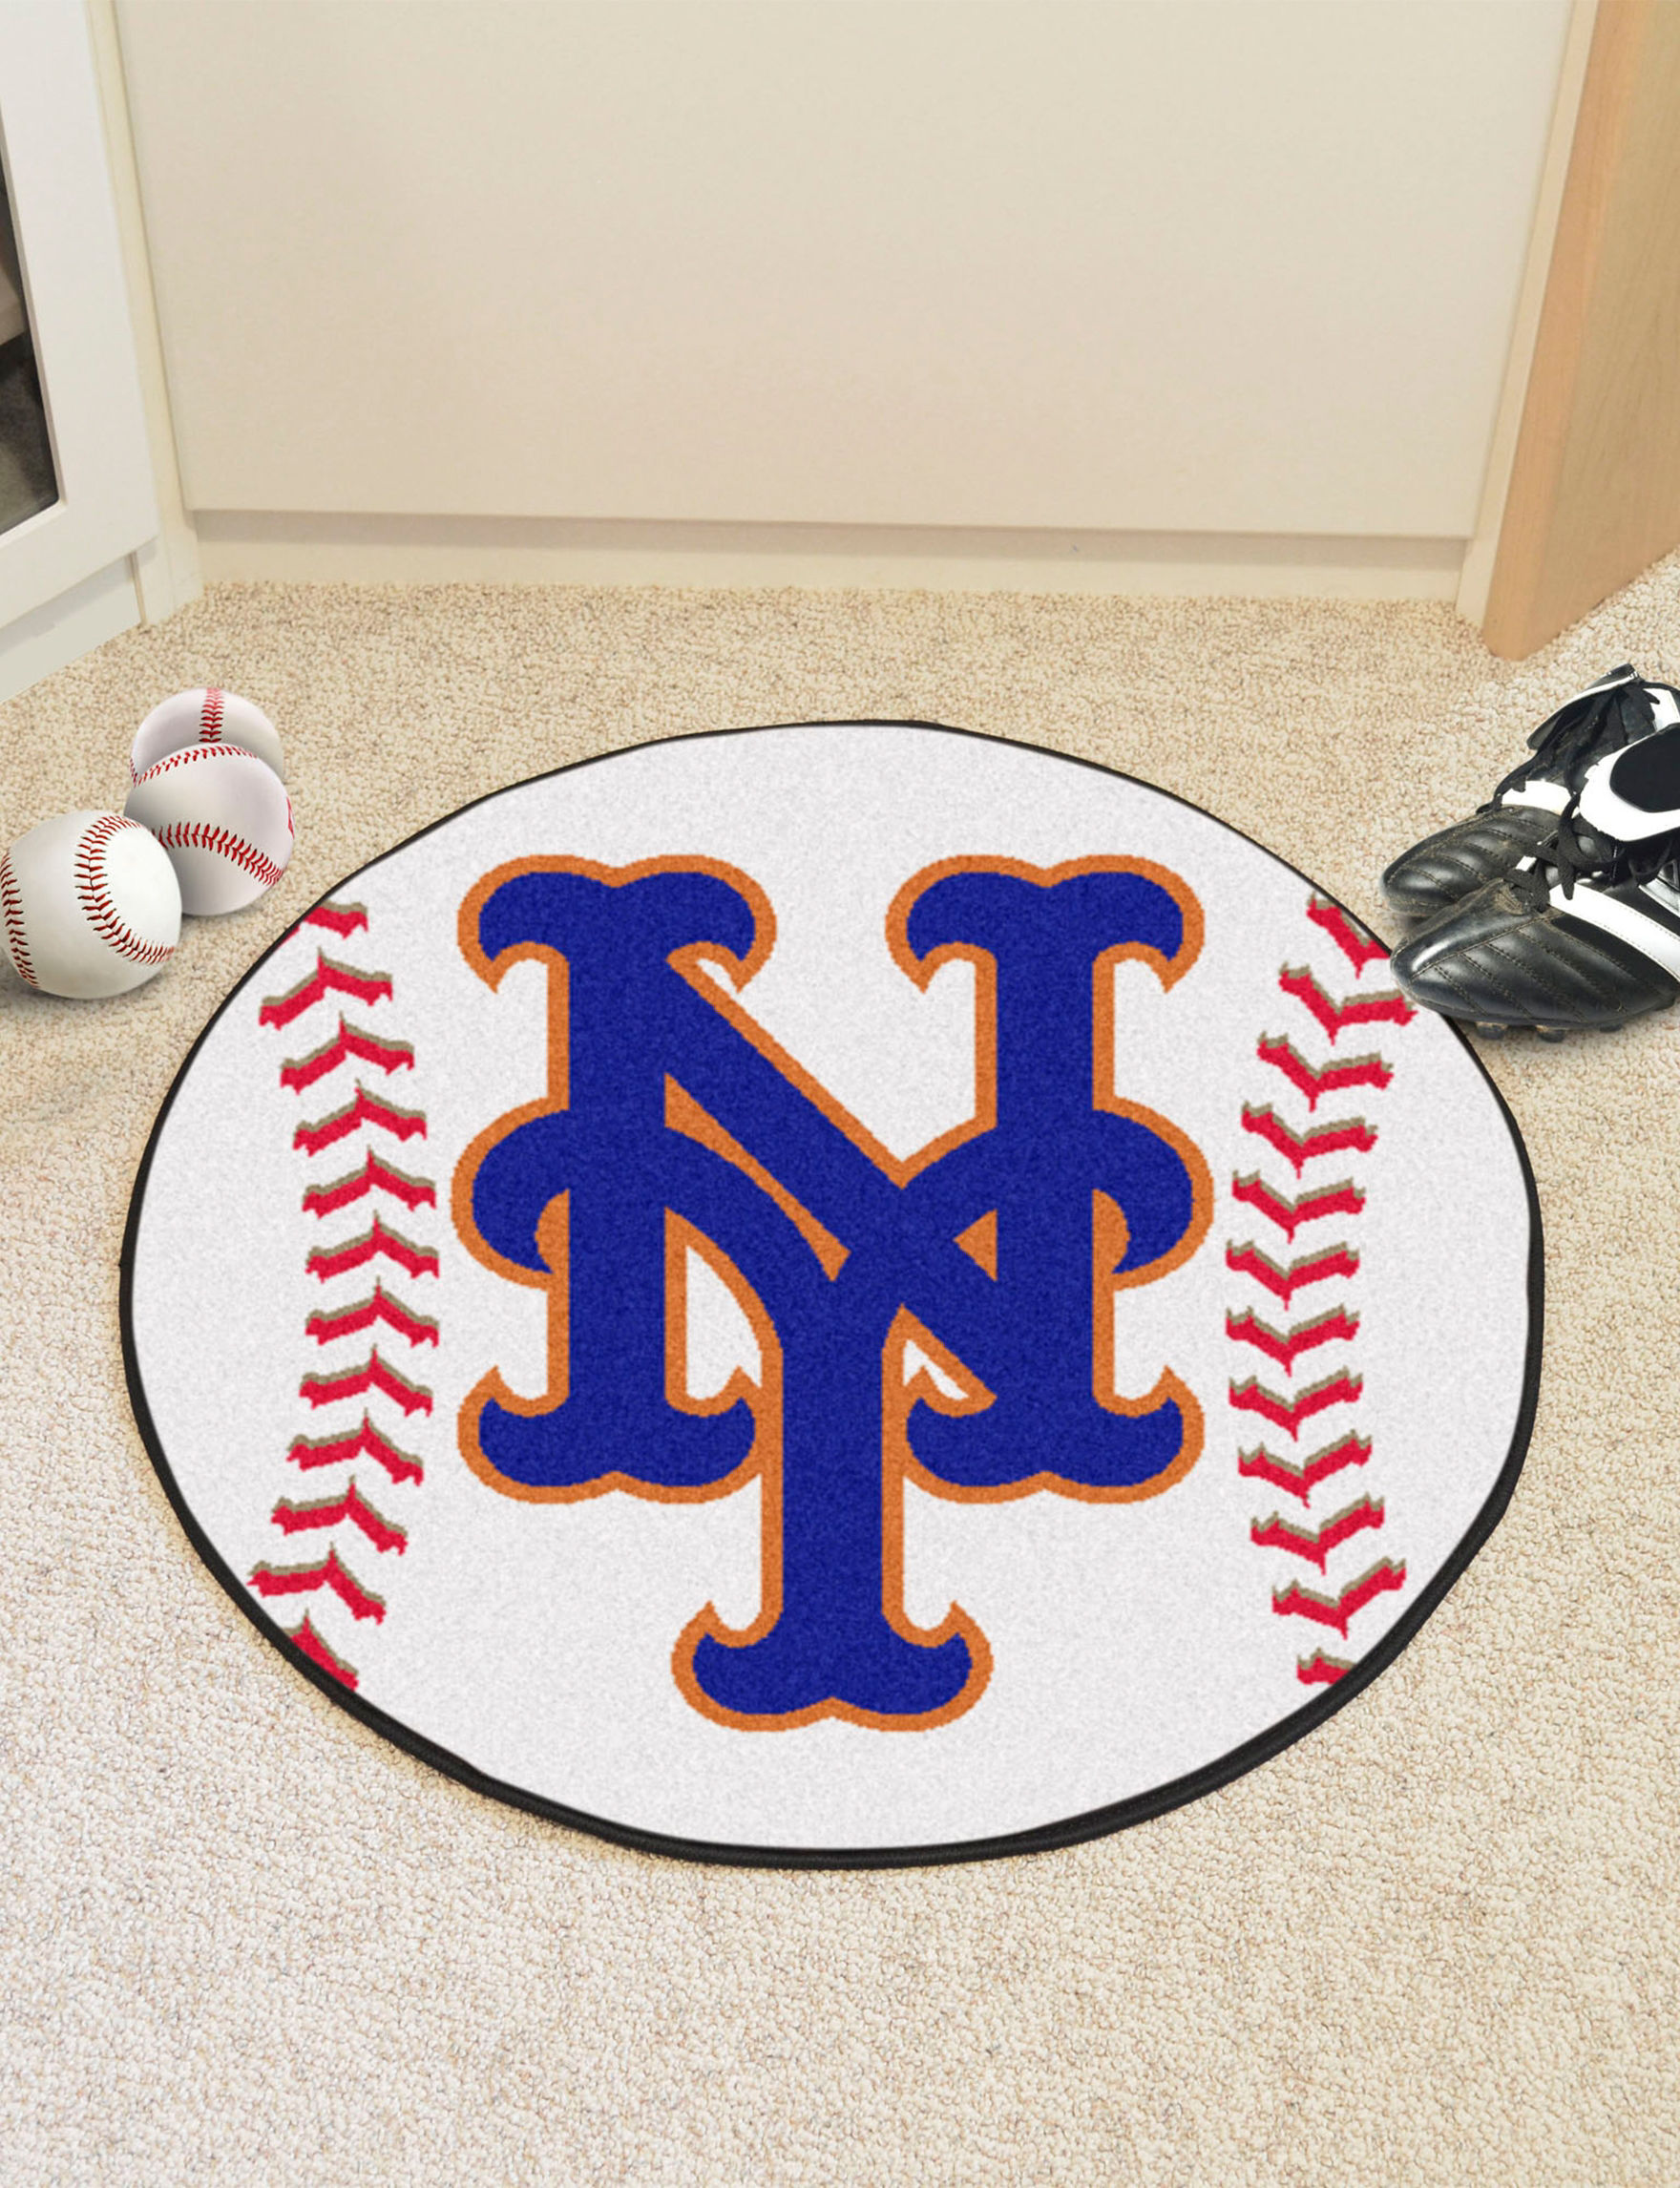 Fanmats Orange Accent Rugs Outdoor Rugs & Doormats MLB Rugs